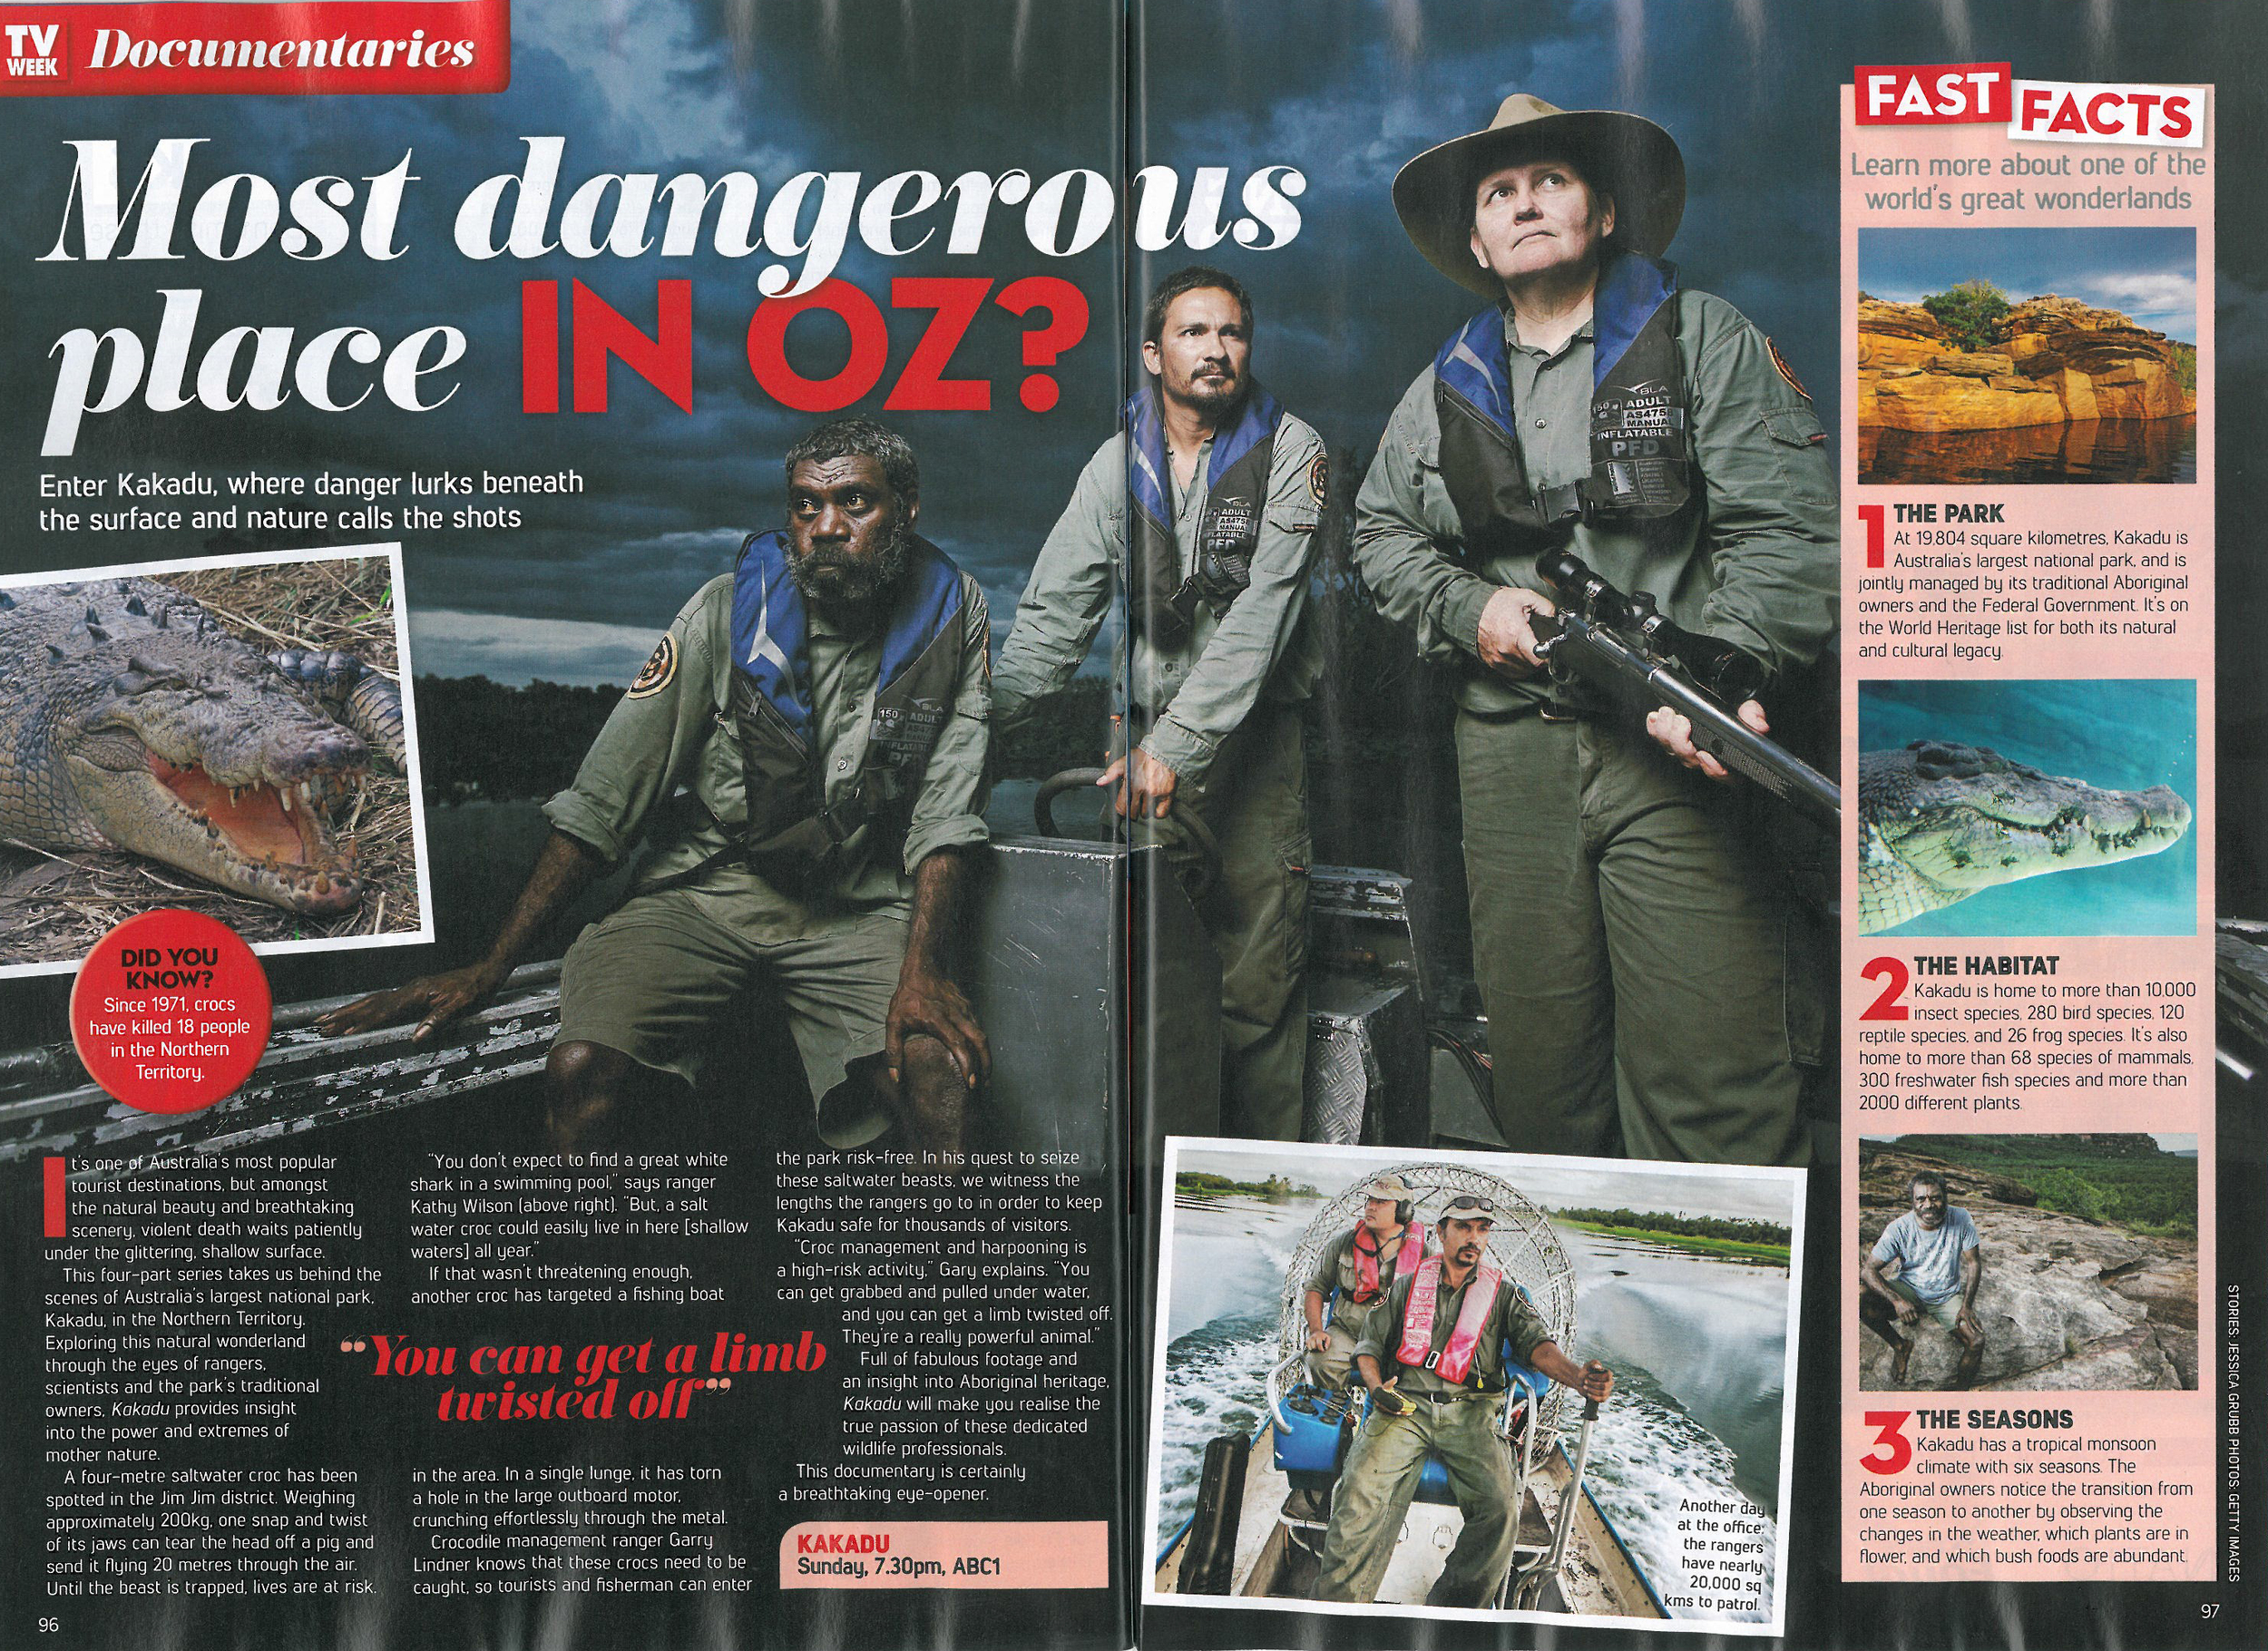 TV Week - Oct 5 -11 issue copy